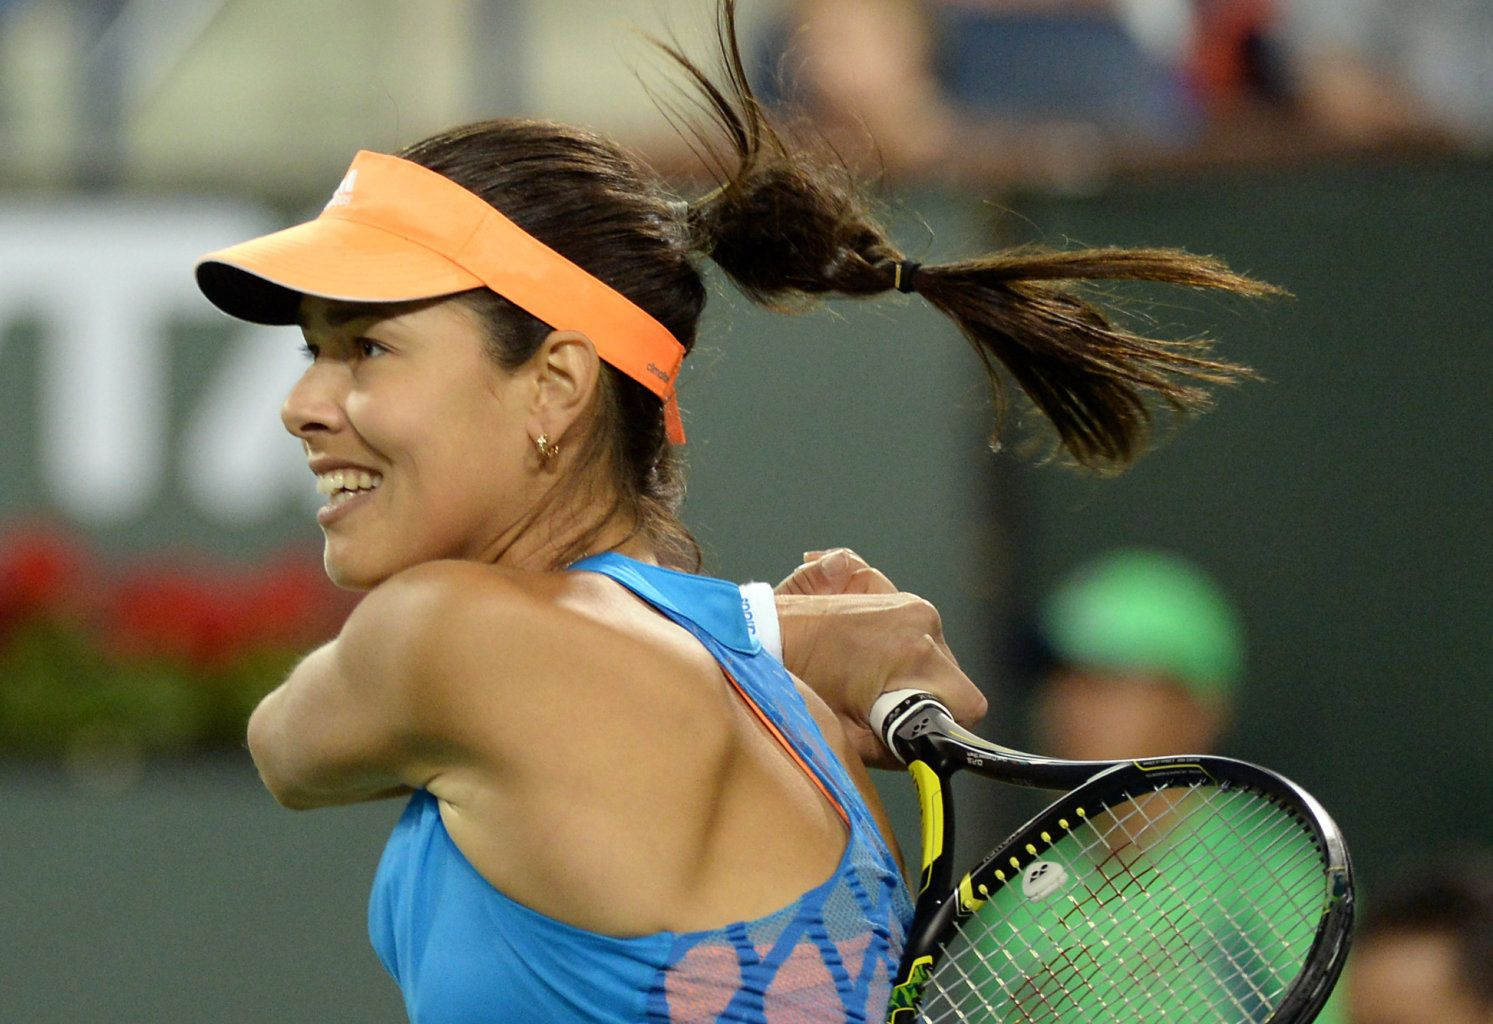 #11-Seed Ana Ivanovic lost in straight sets to #17-Seed Sloane Stephens in 3rd rd of the BNPP Open. 3/10/14